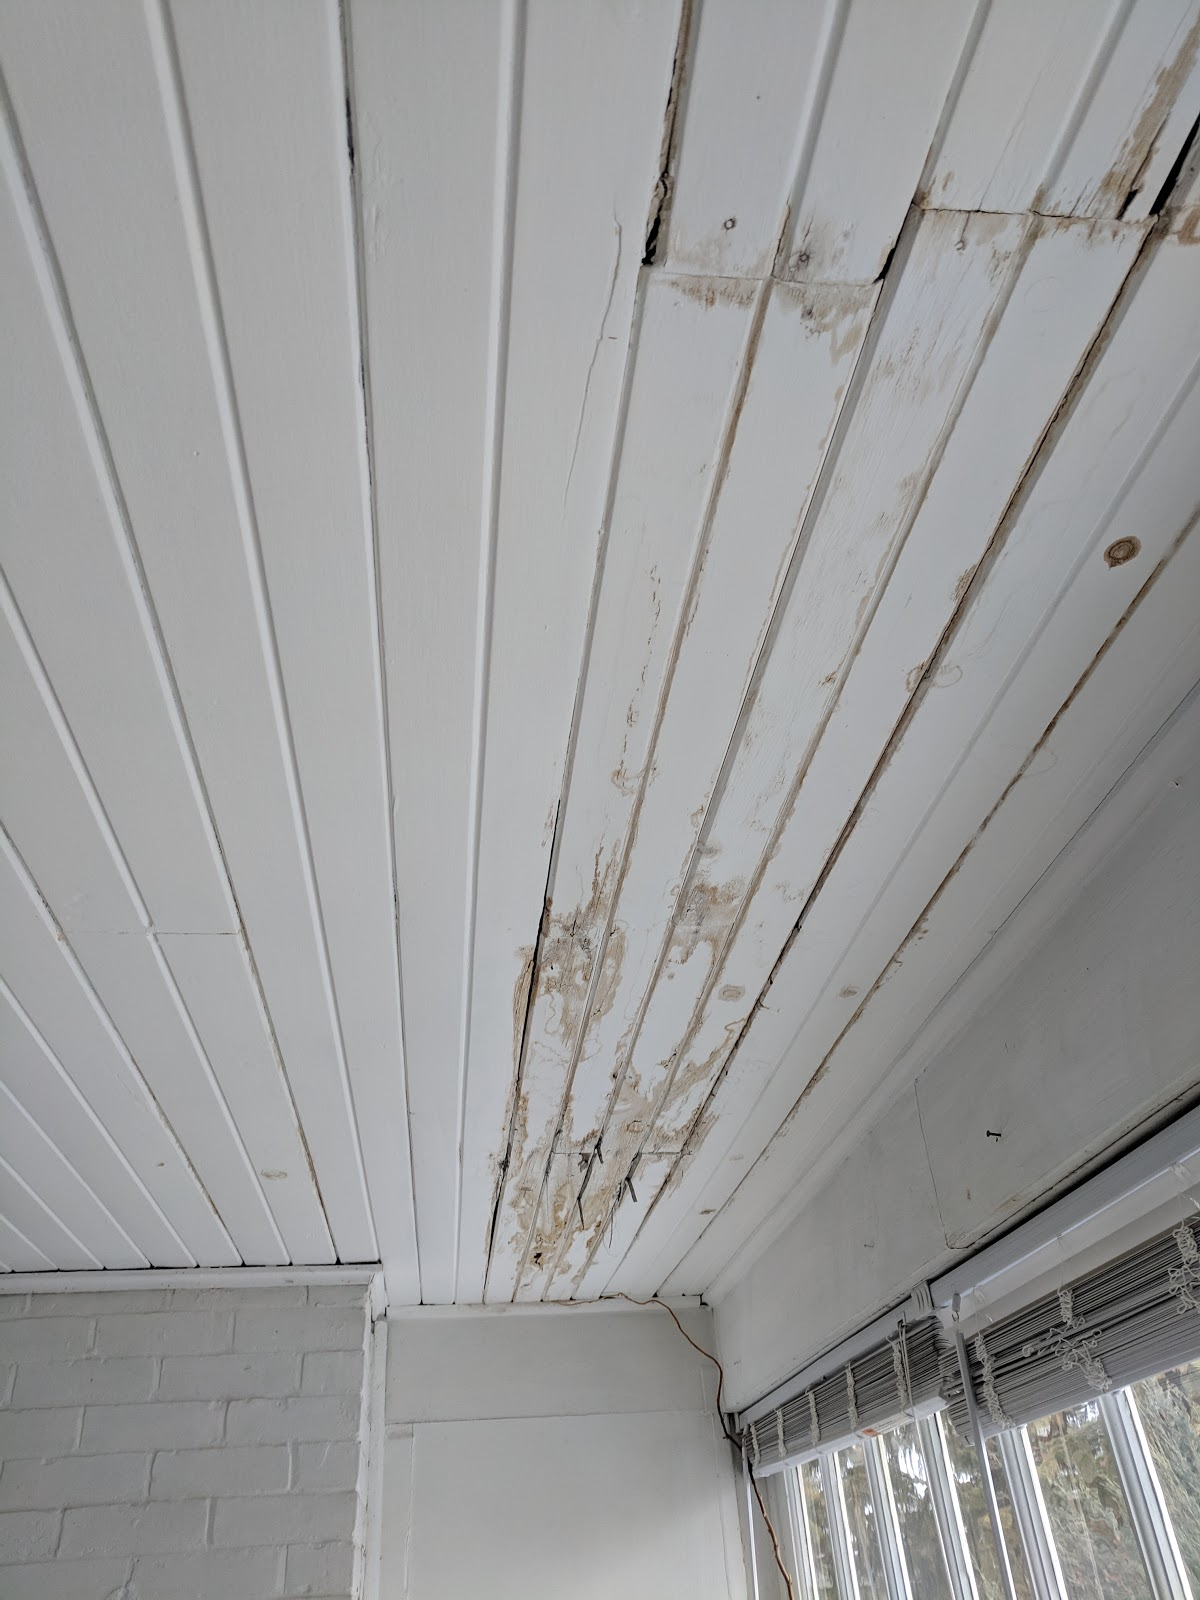 Covered balcony ceiling showing areas of frequent leaks.